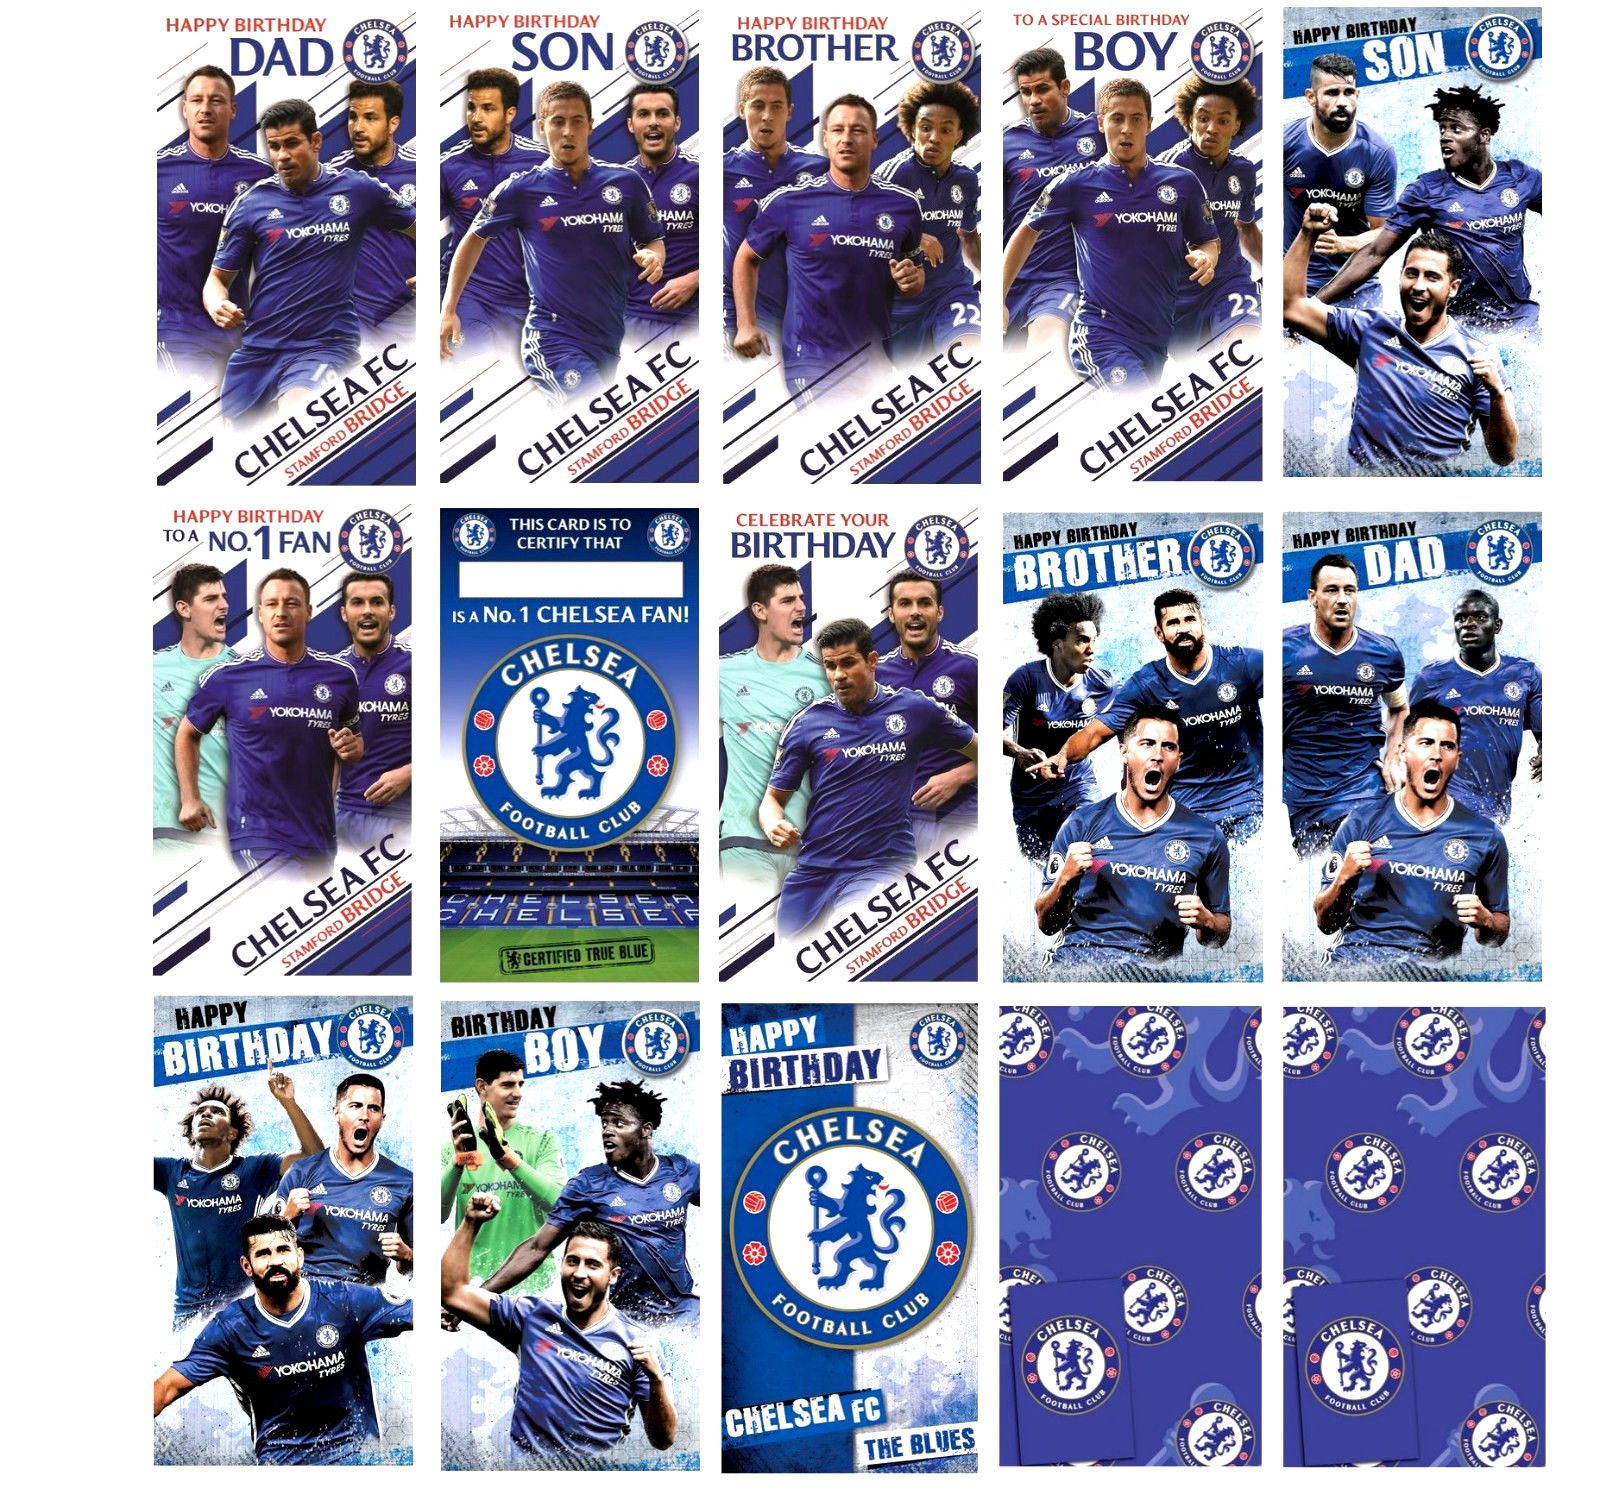 Official Chelsea Football Team Birthday Cards Gift Wrap Dad Brother Son Popu View More On The Link Ht Chelsea Football Team Dad Birthday Football Team